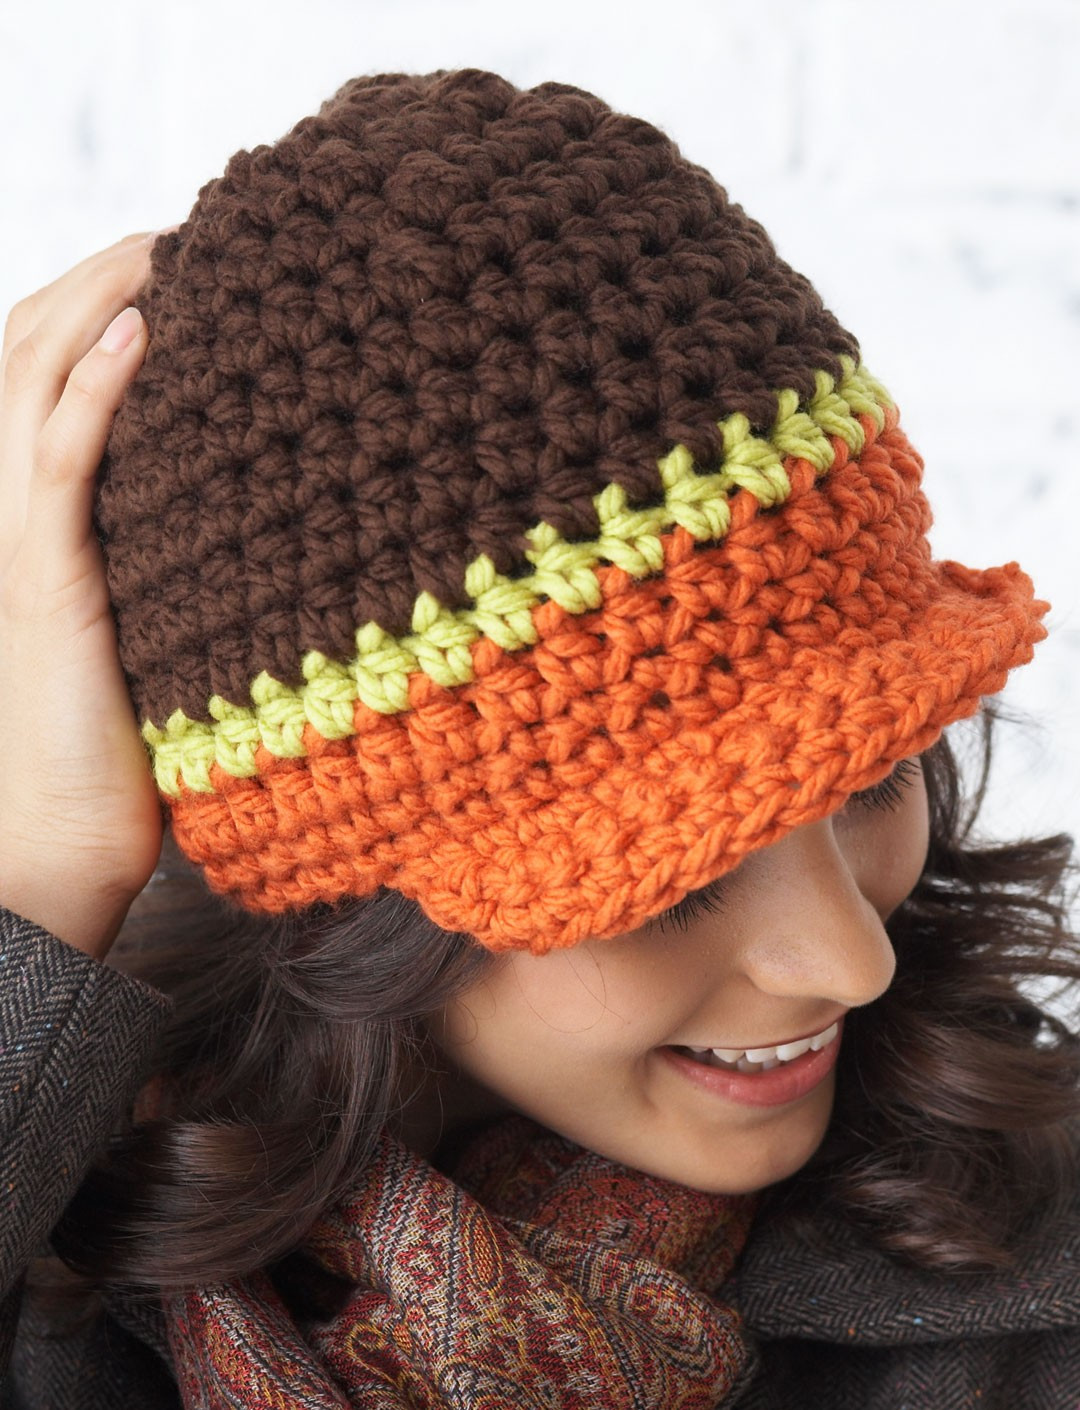 Bernat Crochet Patterns Lovely Bernat Peak Hat Crochet Pattern Of Awesome 45 Photos Bernat Crochet Patterns